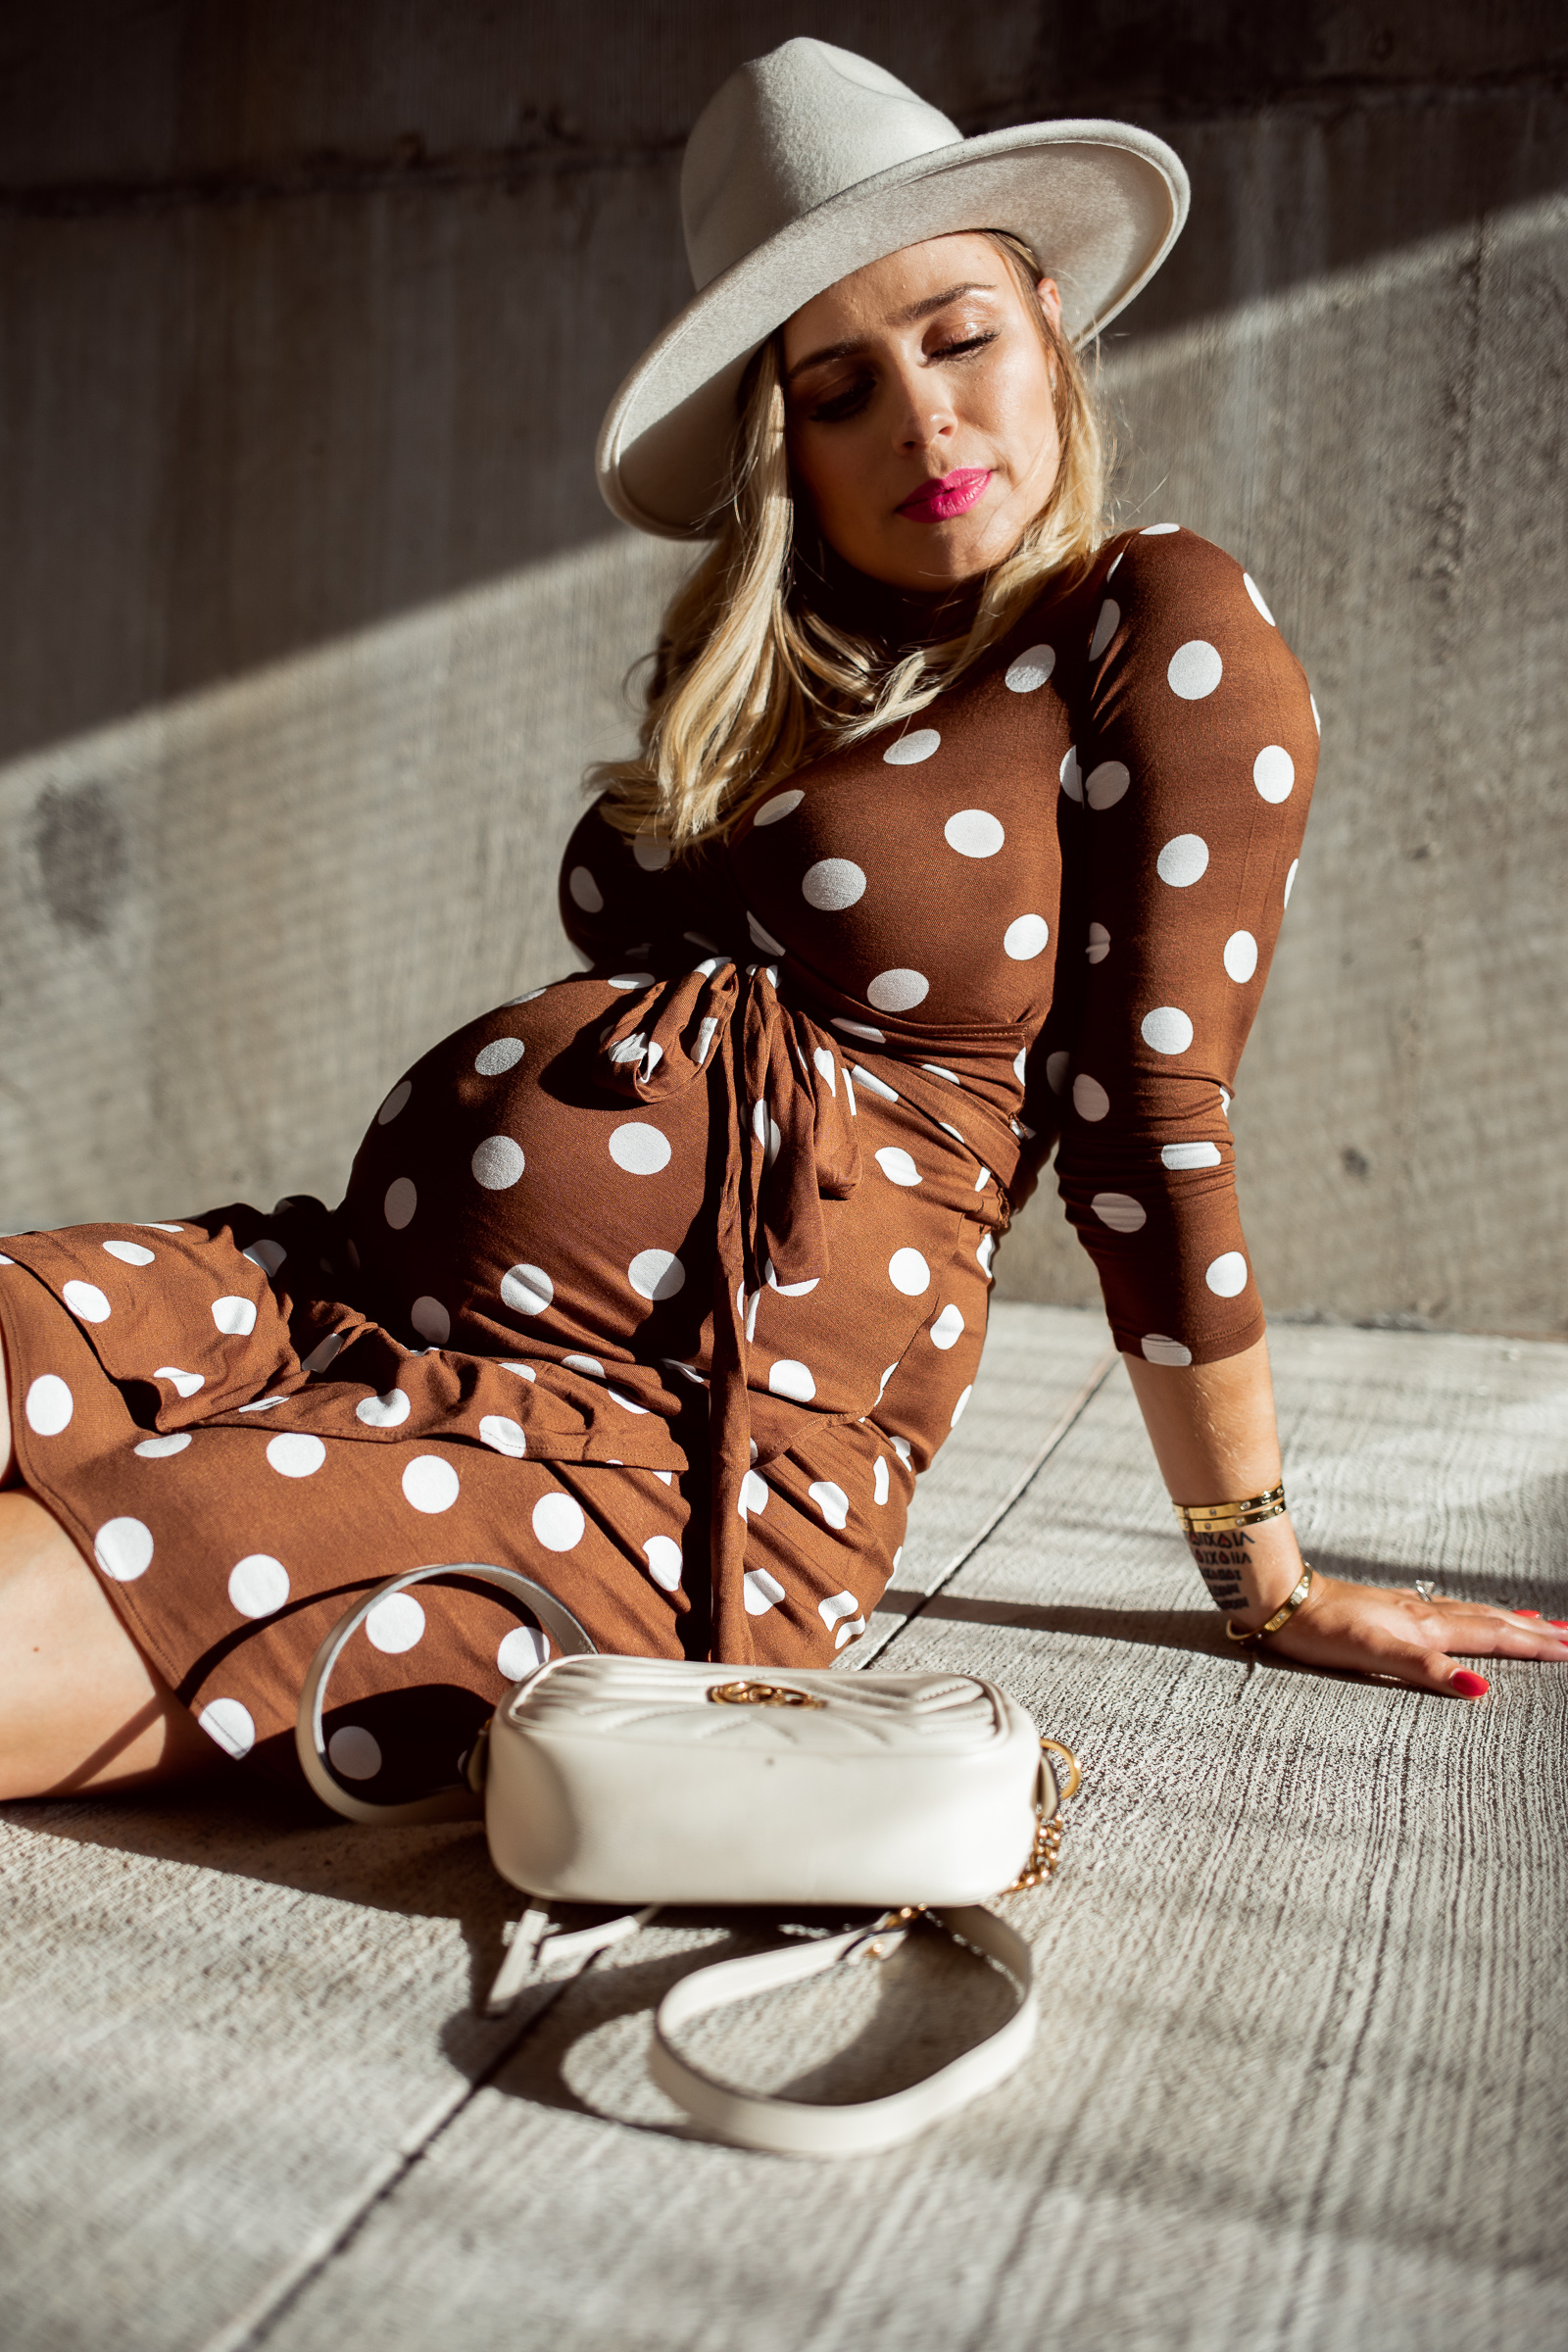 houston fashion blogger Elly Brown wears a maternity polka dot dress from HM